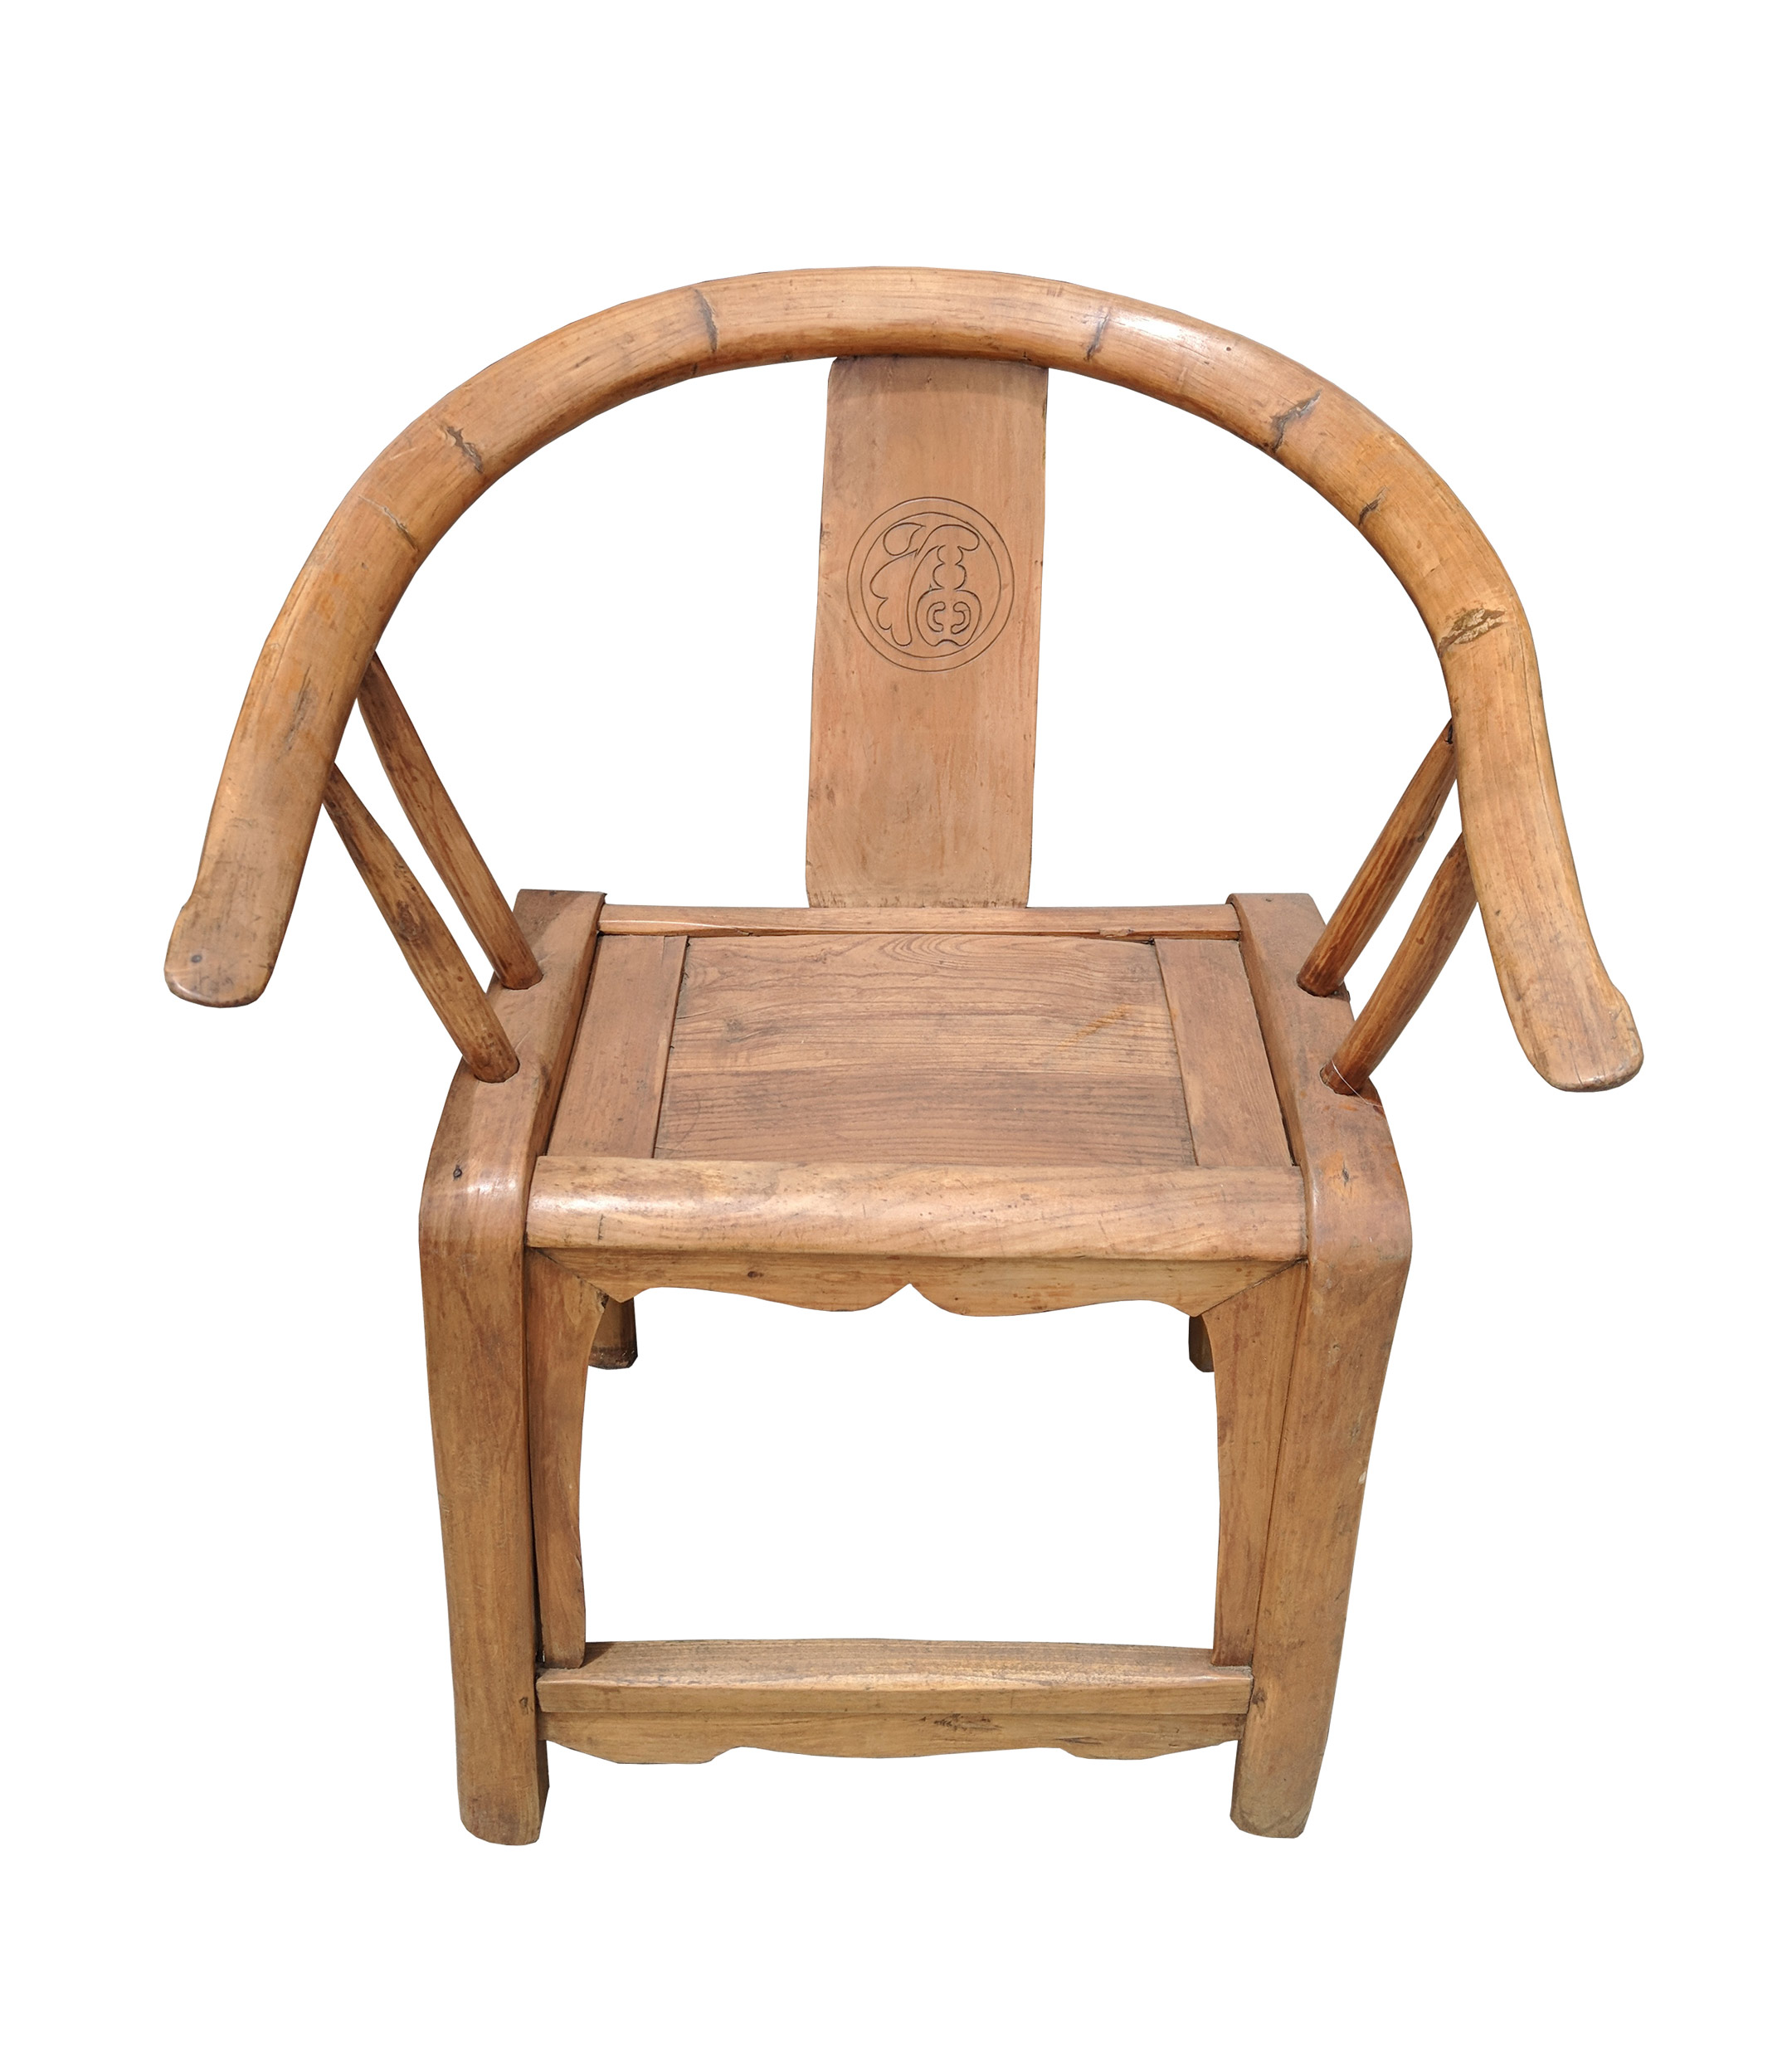 15585 Antique Chinese Horseshoe Style Chair With Fu Blessing Character